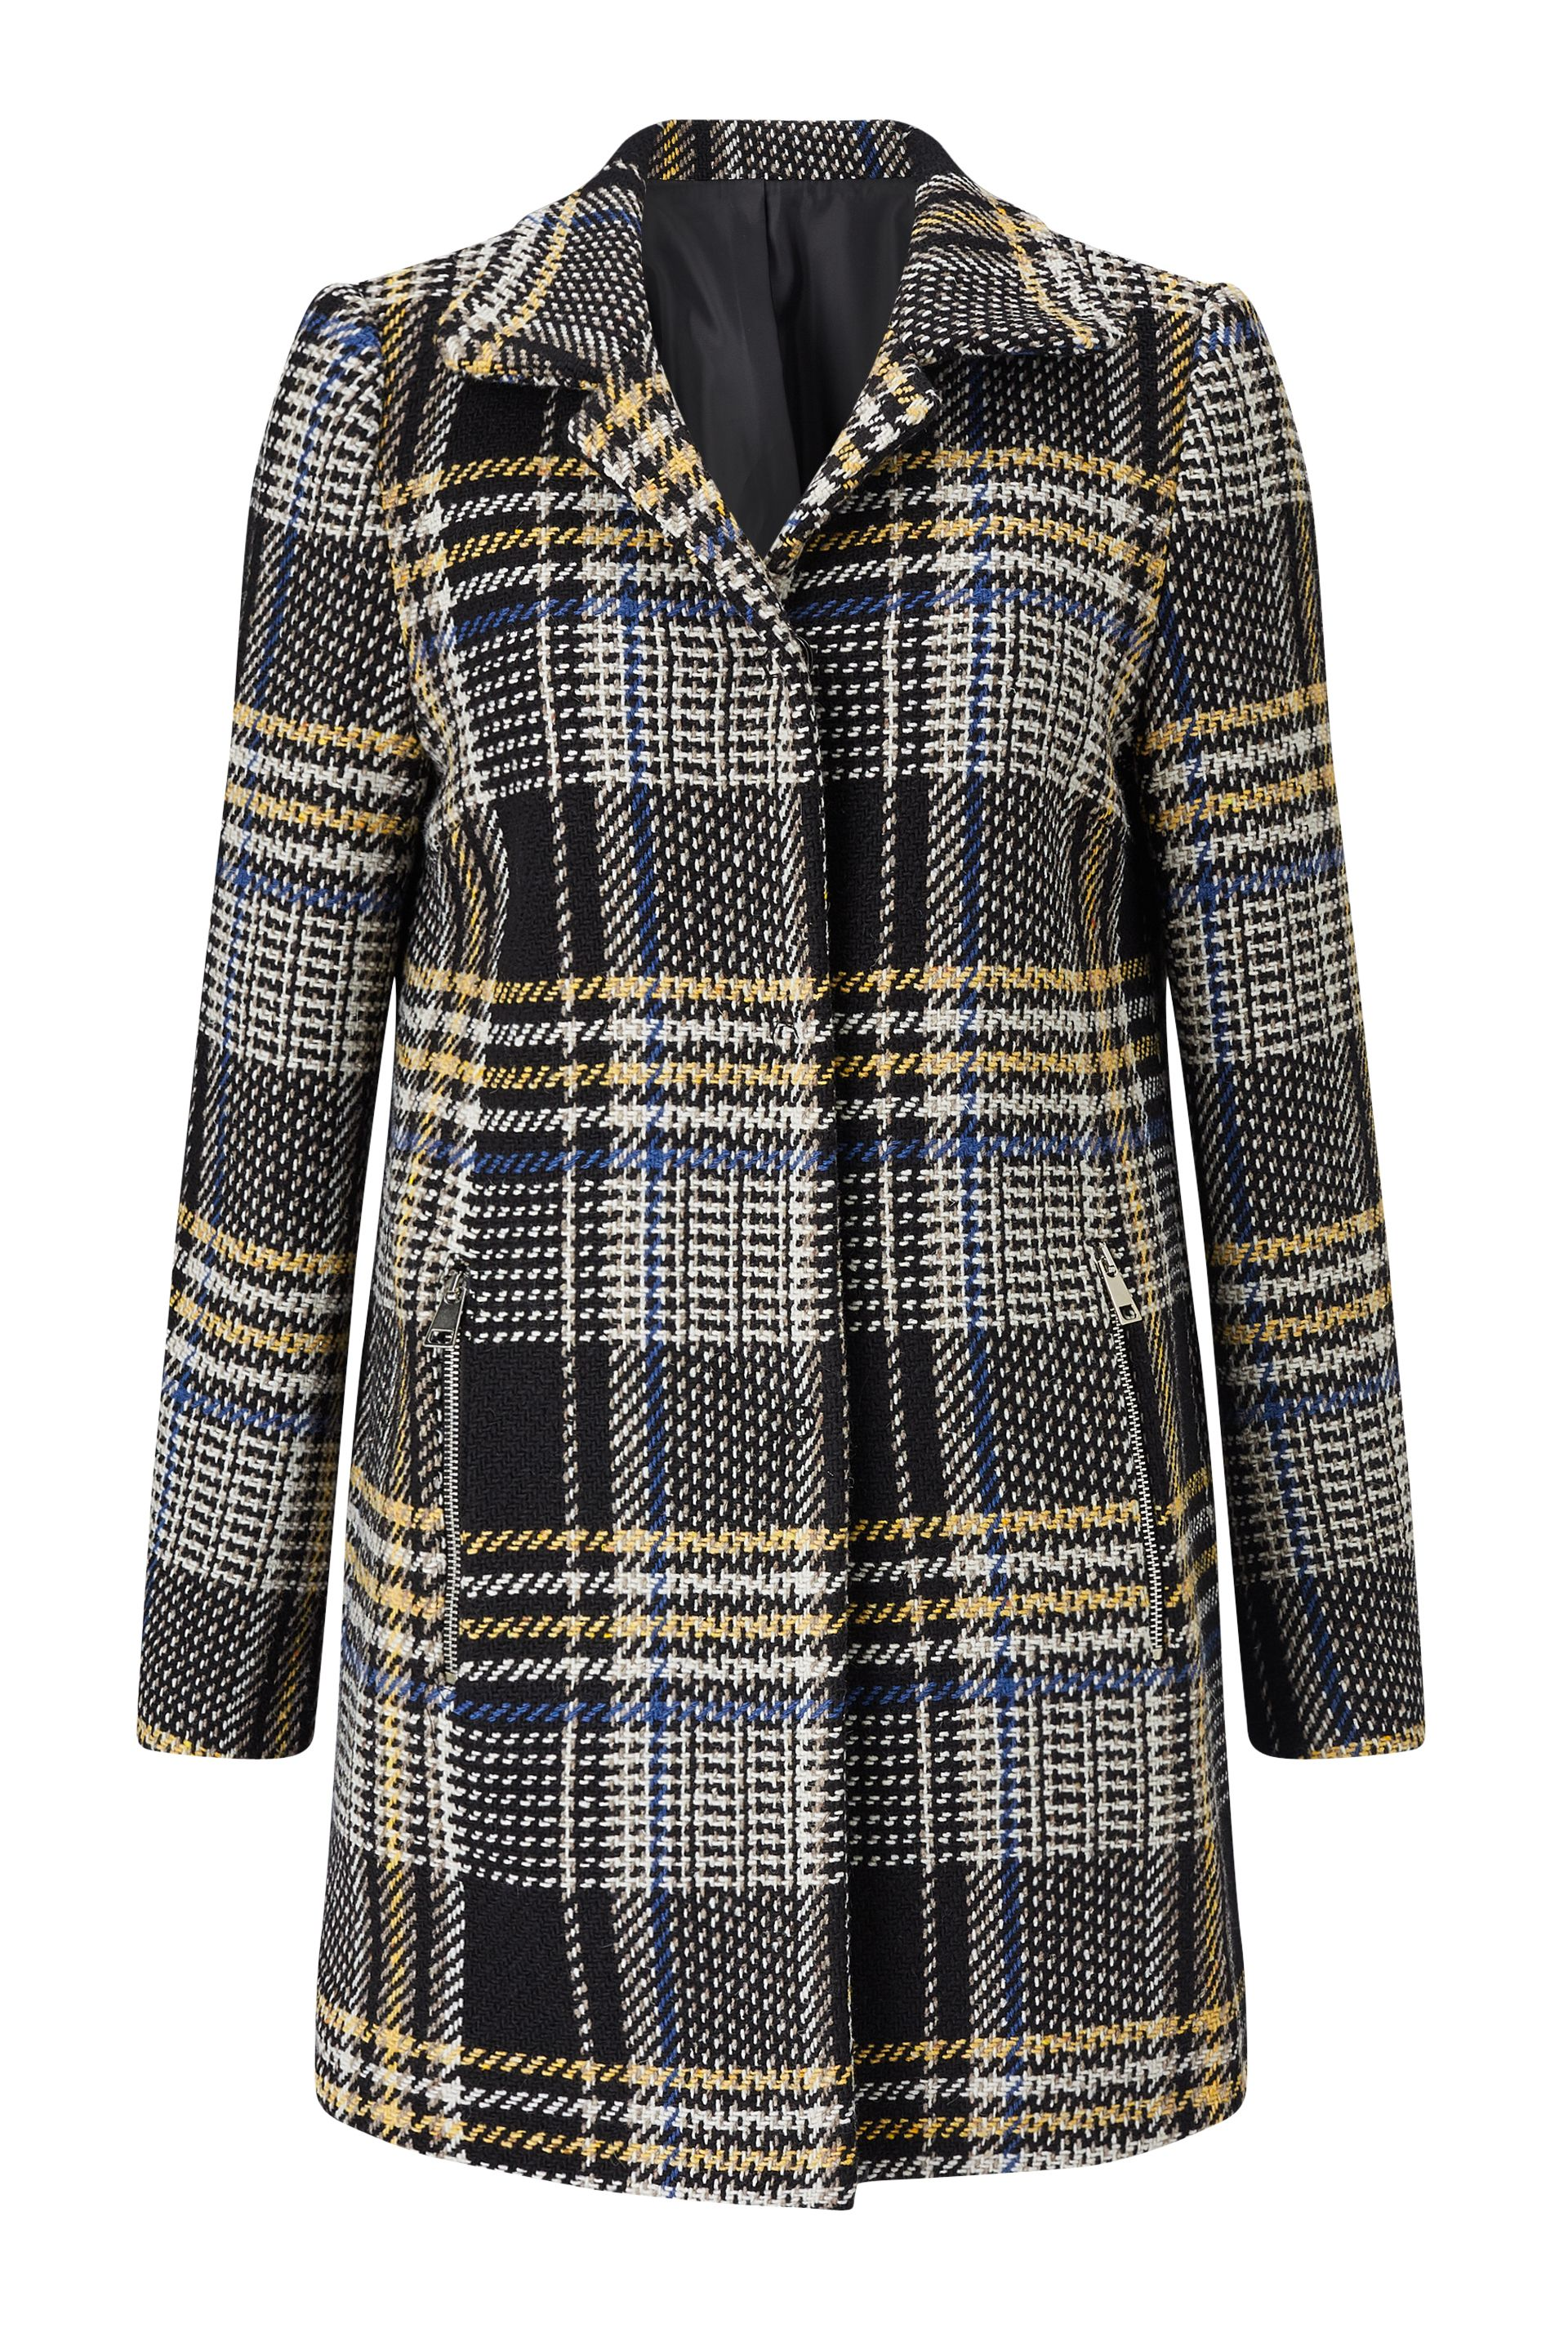 James Lakeland Check Tweed Coat, Multi-Coloured